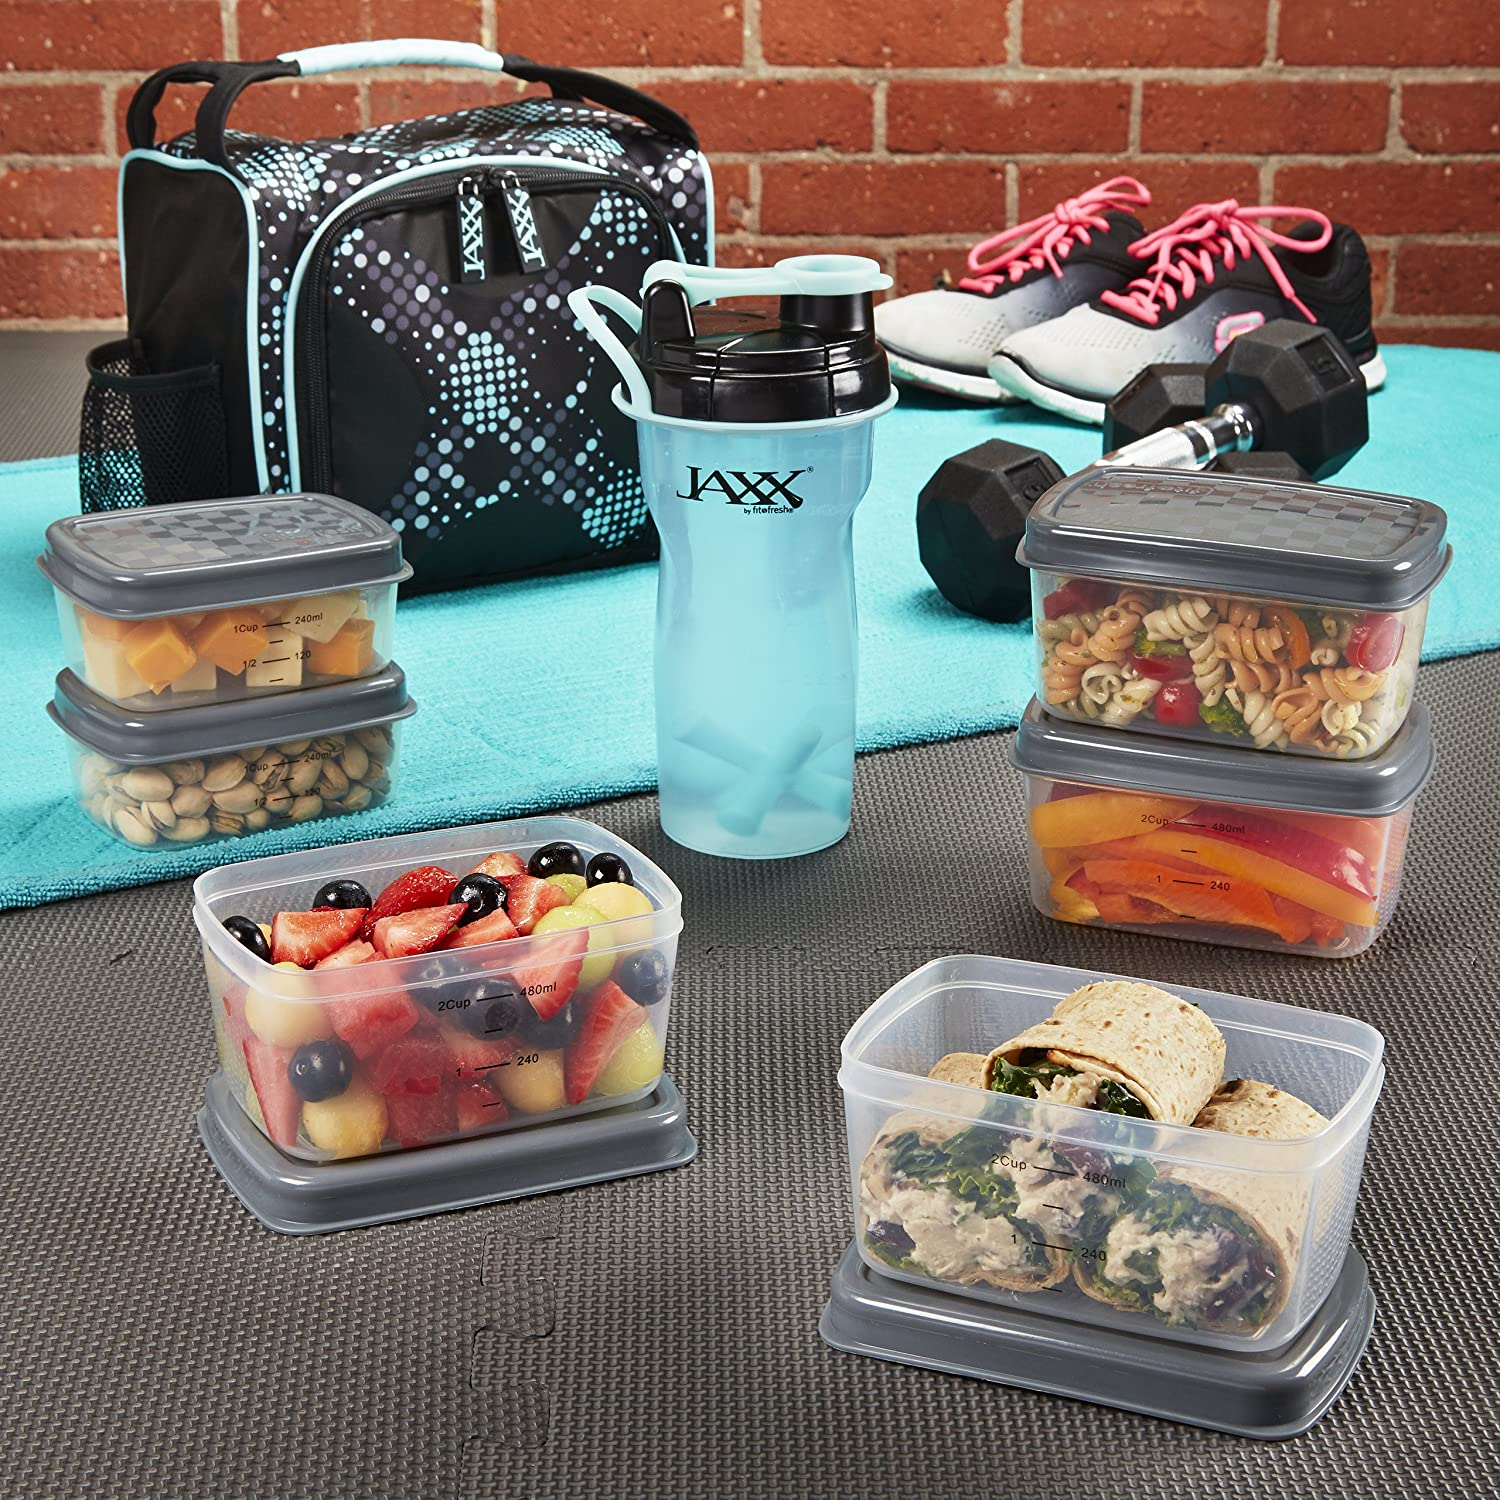 Fit & Fresh Jaxx FitPak Meal Prep Bag with Leakproof Portion Control Container Set and Shaker Cup, Pack Healthy Meals All Day, Aqua Dot